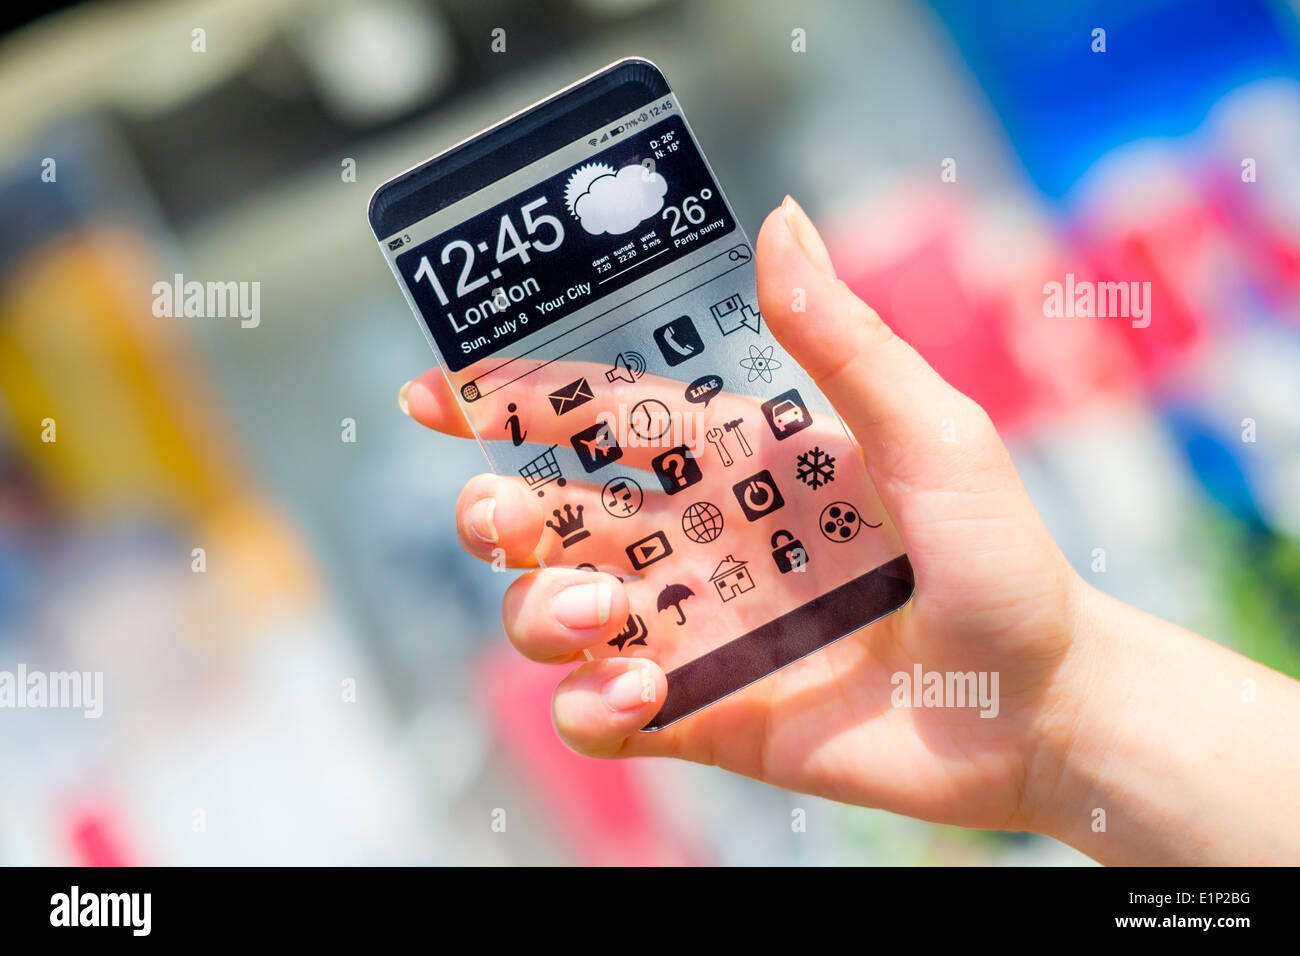 Smartphone with transparent screen in human hands. - Stock Image